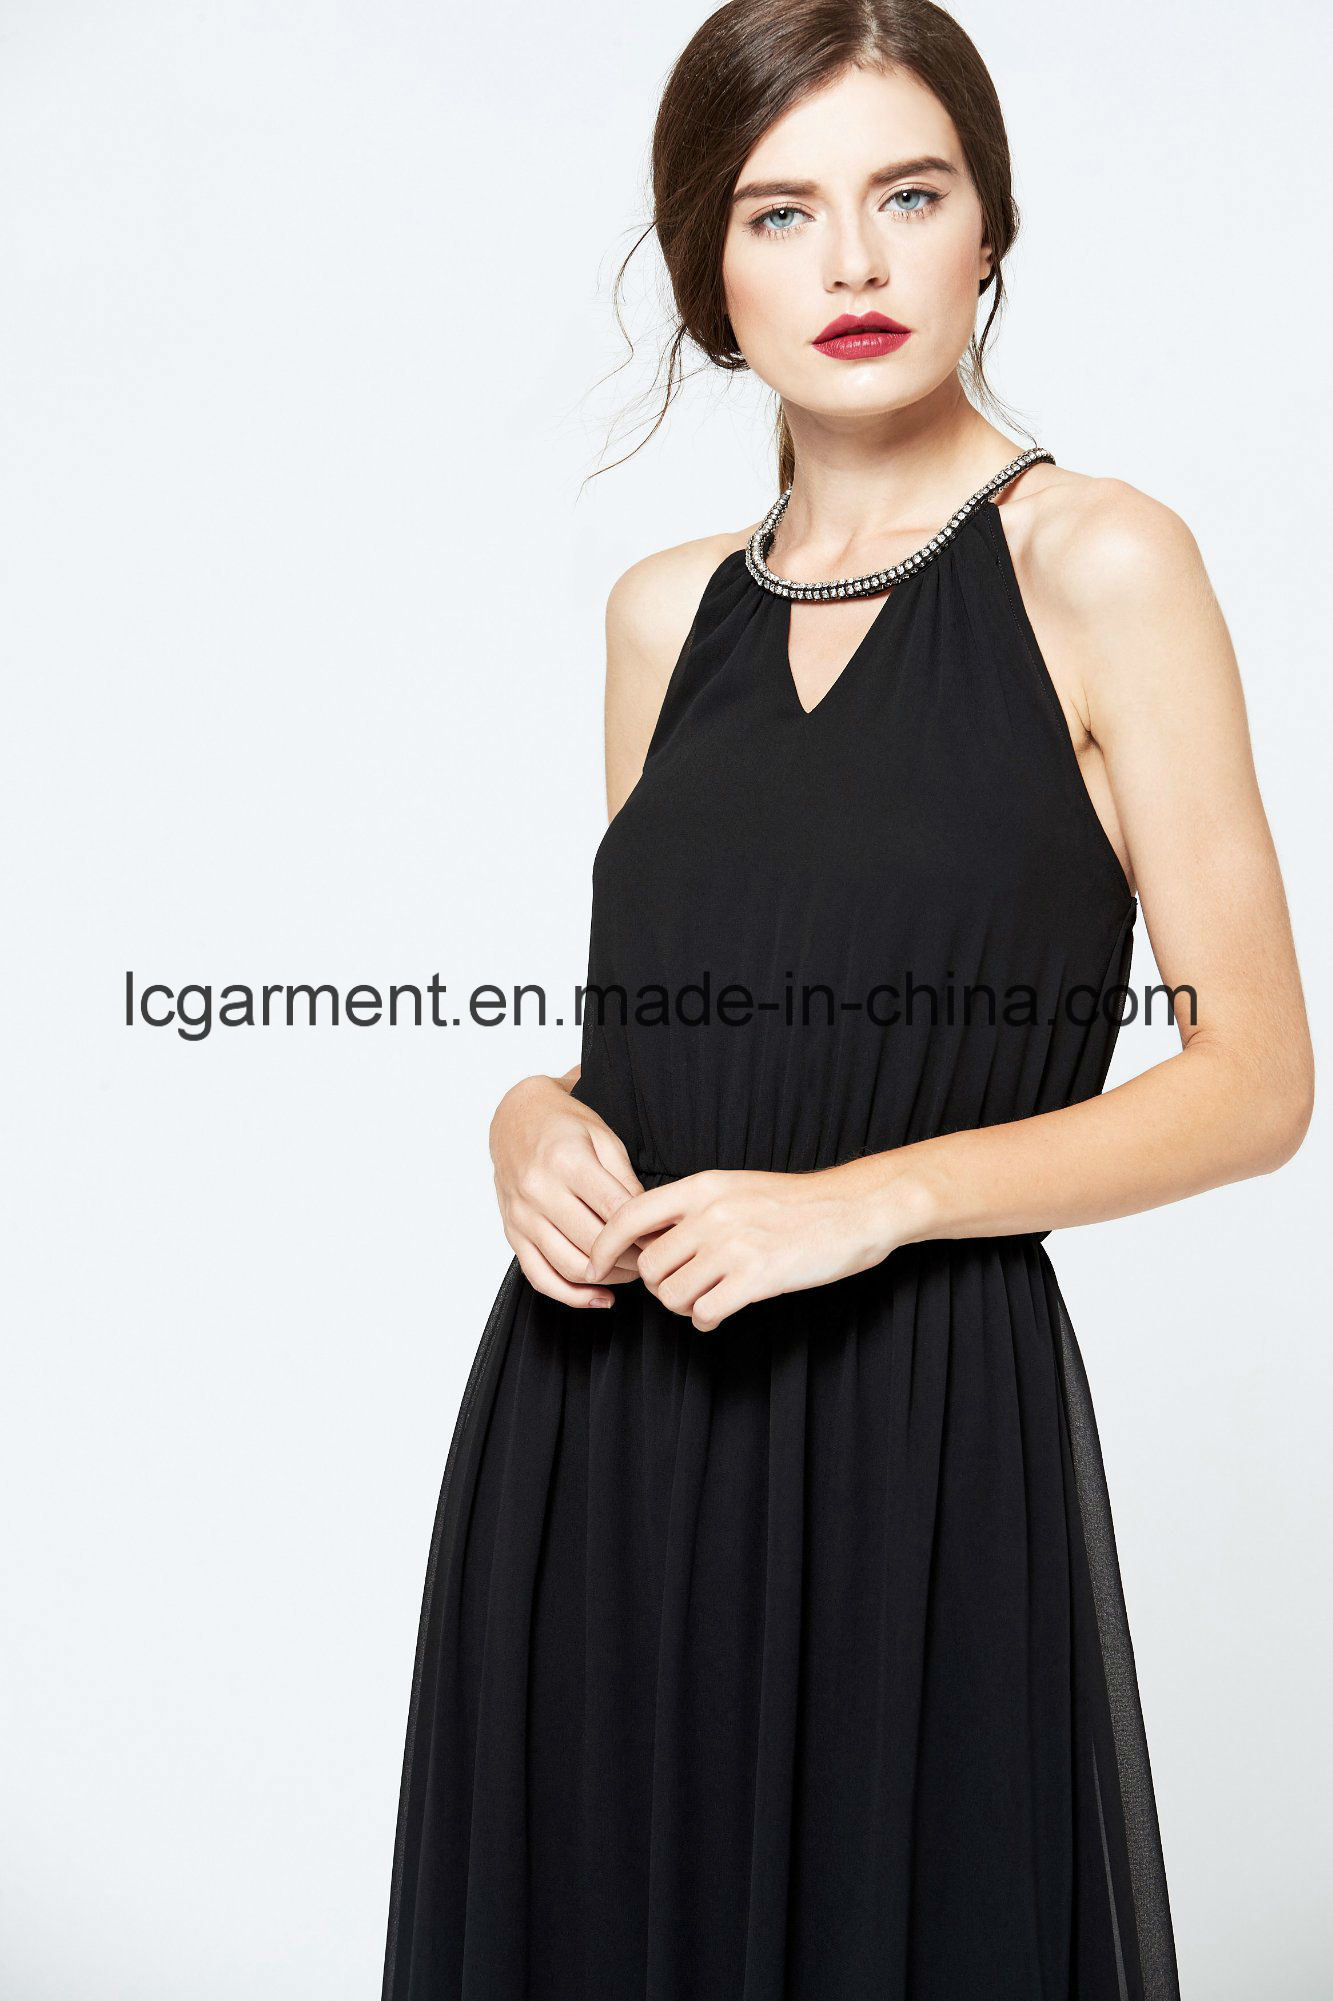 Simple Design New Lady Jumper Skirt Sexy Backless Summer Dress